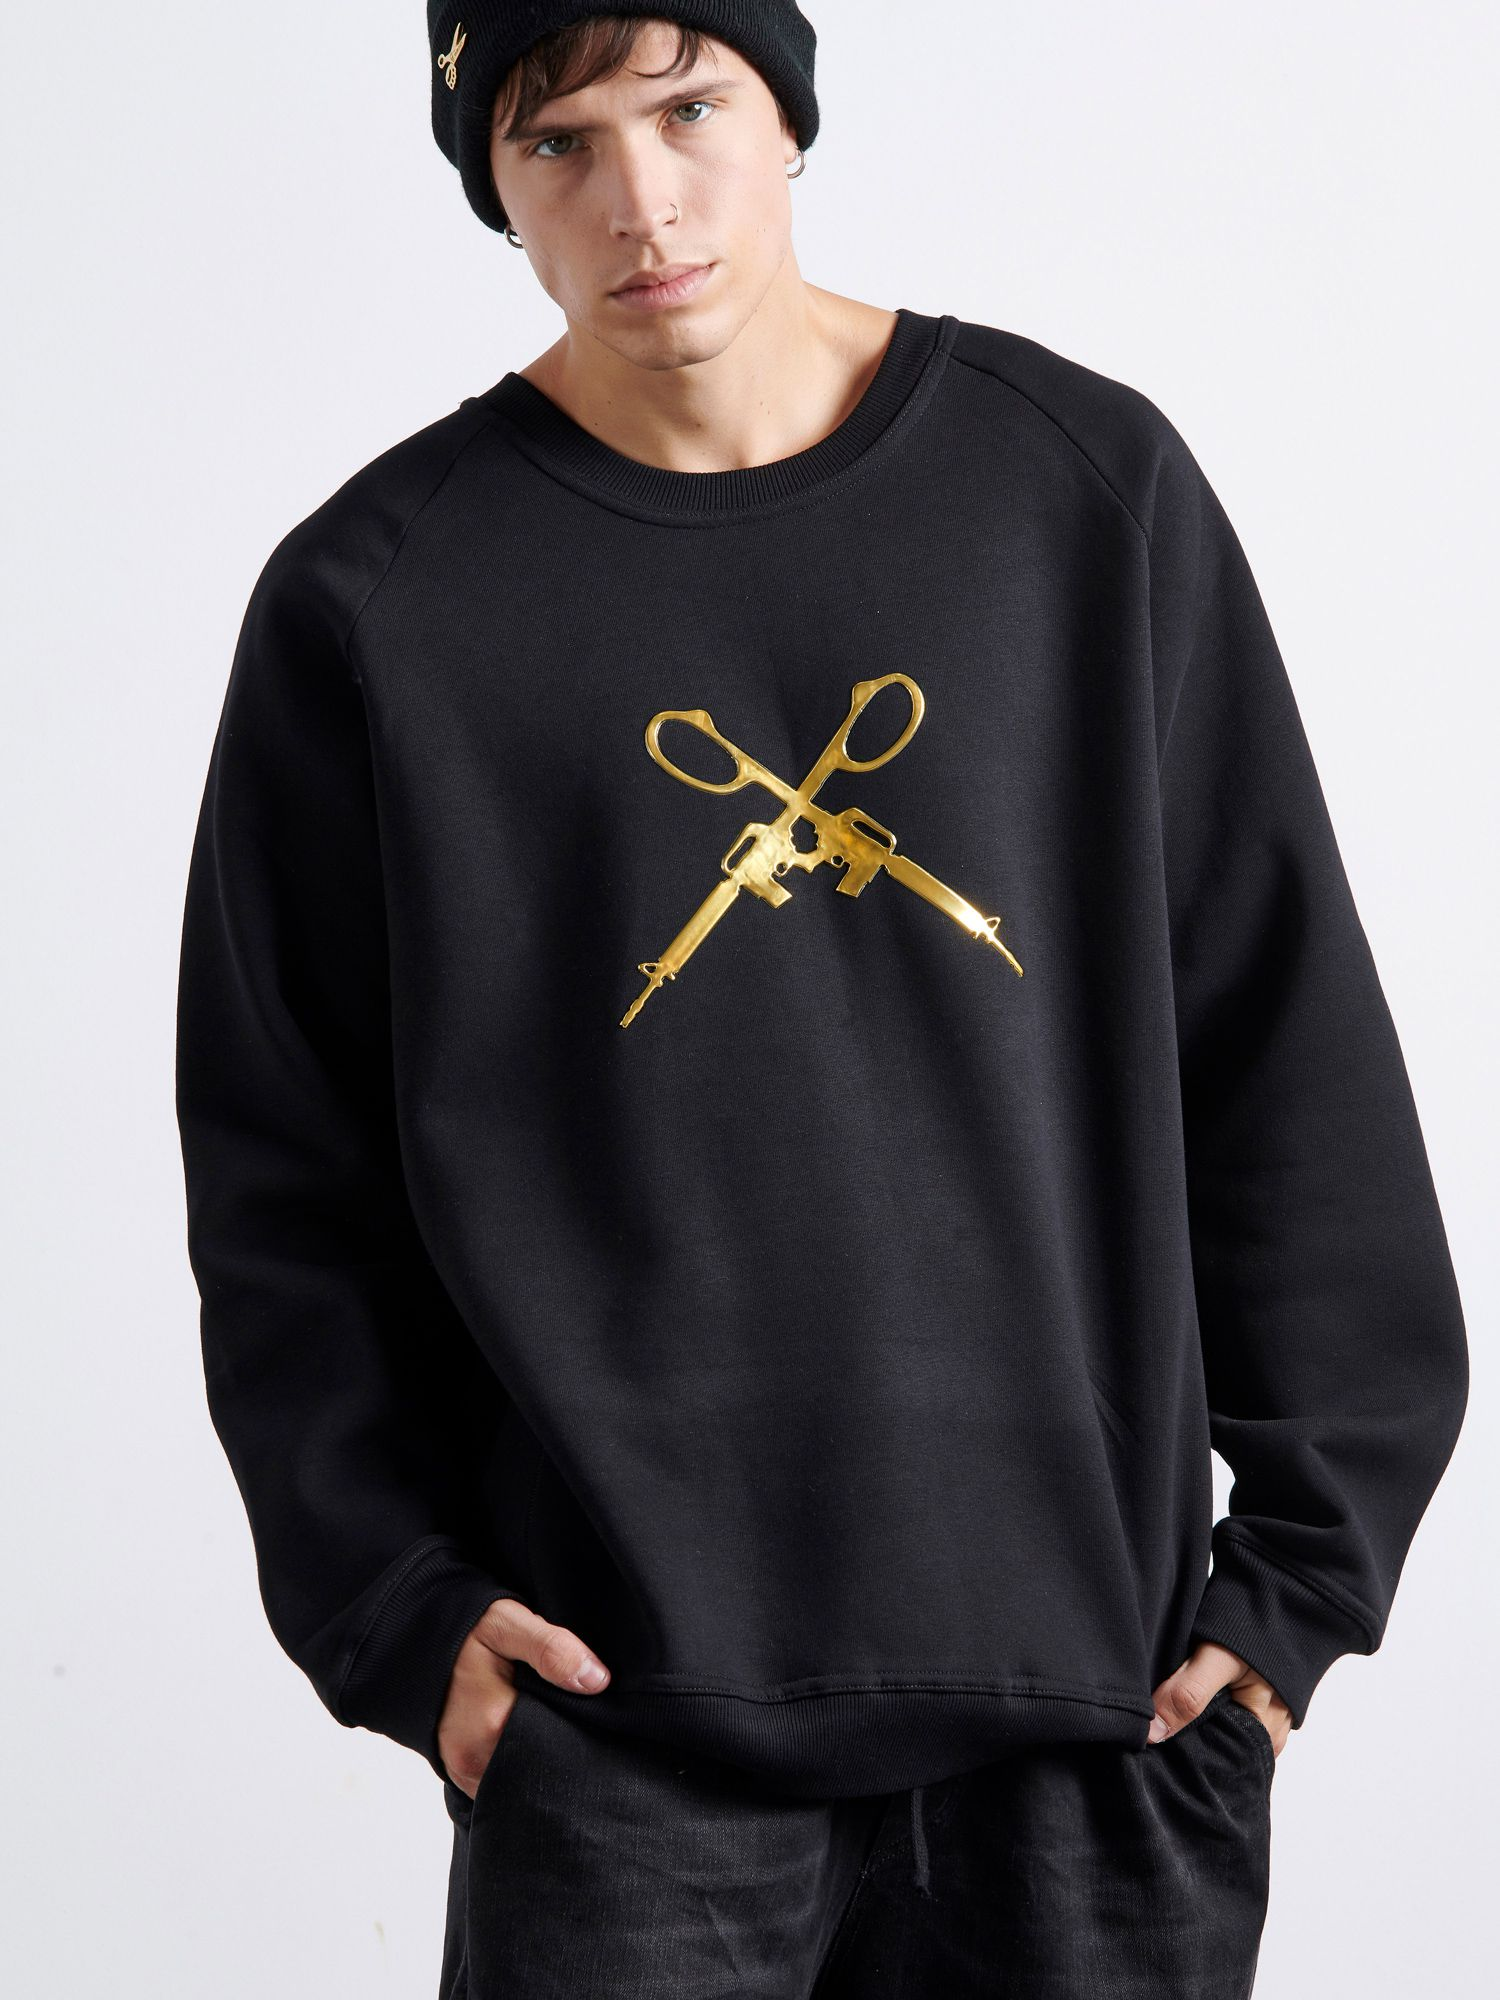 3D Gold Guns Sweater